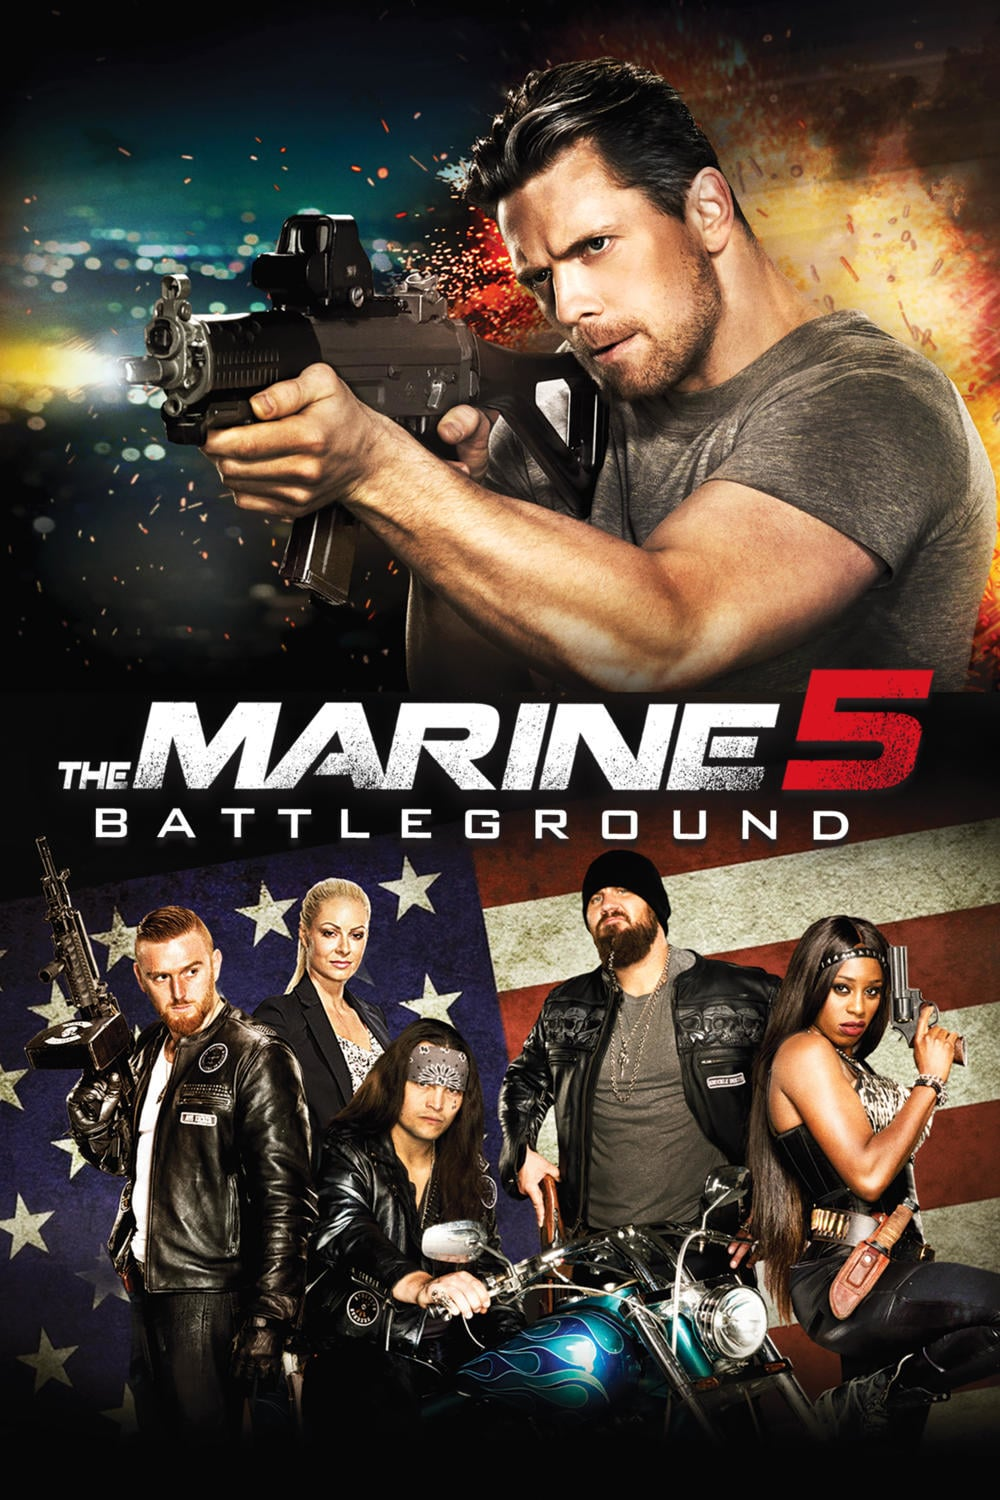 The Marine 5 Battleground